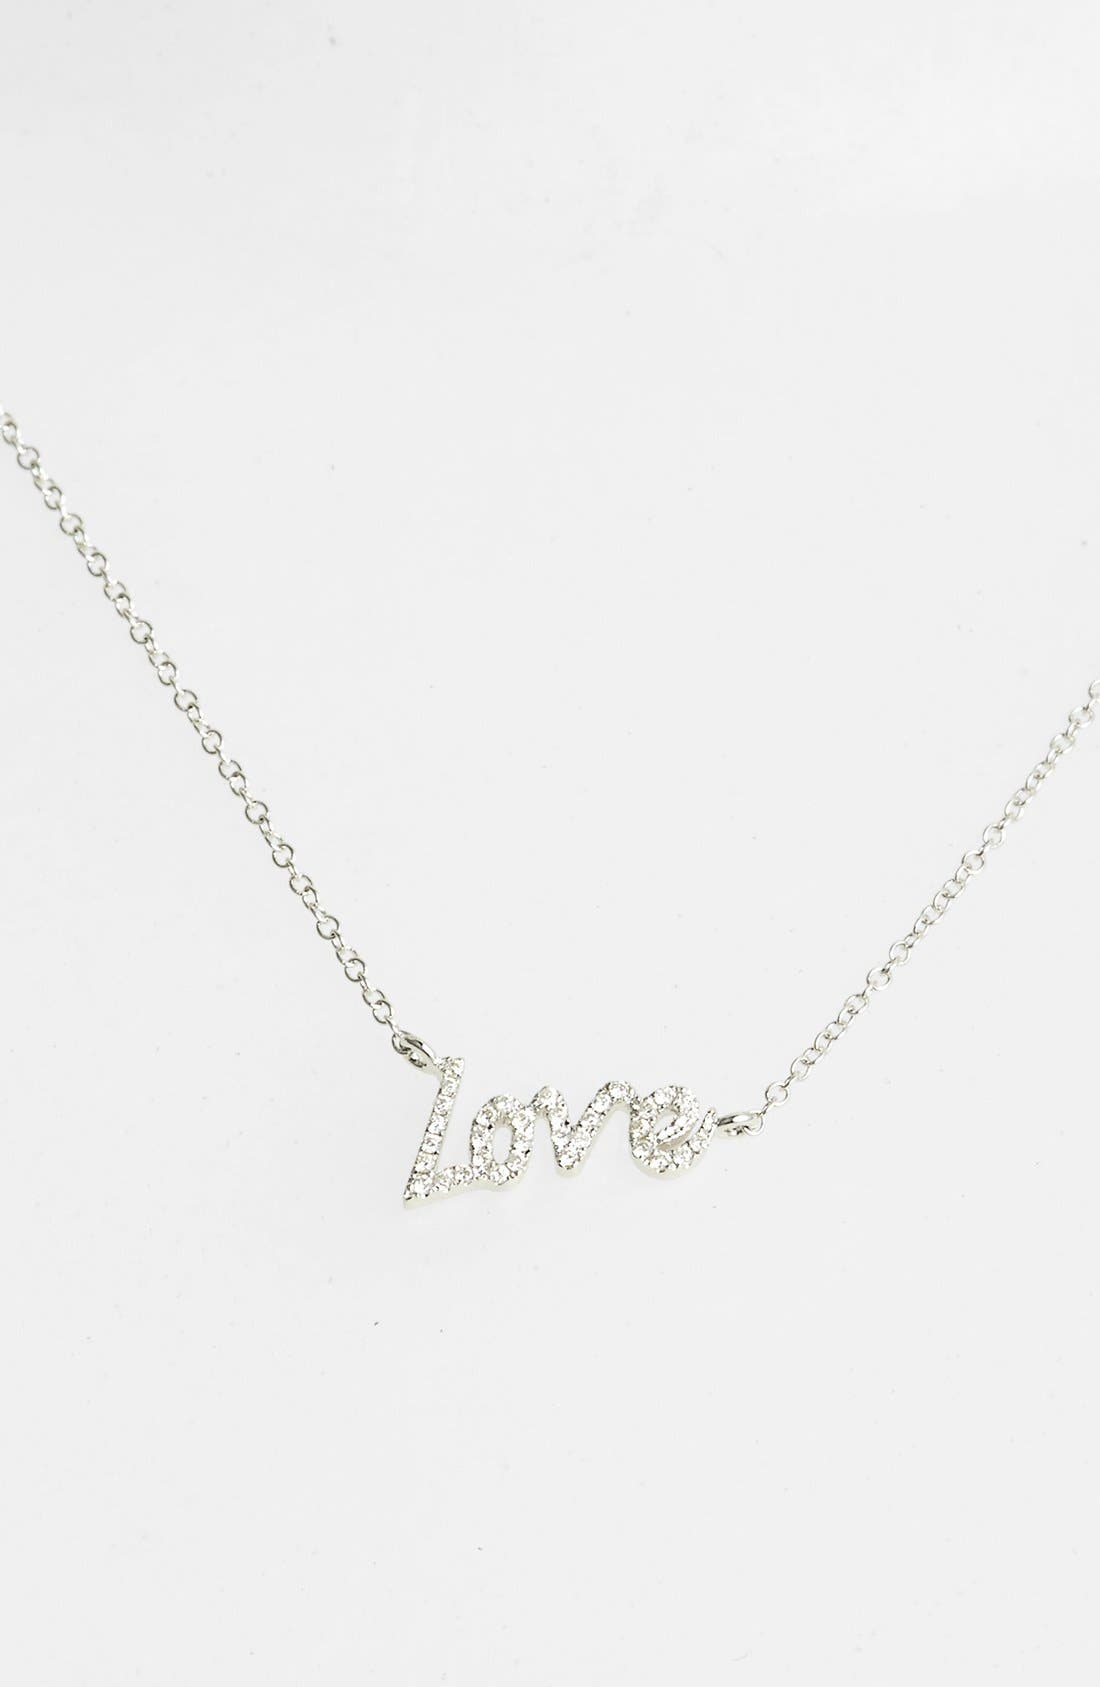 MeiraT Dazzling Diamond Love Pendant Necklace